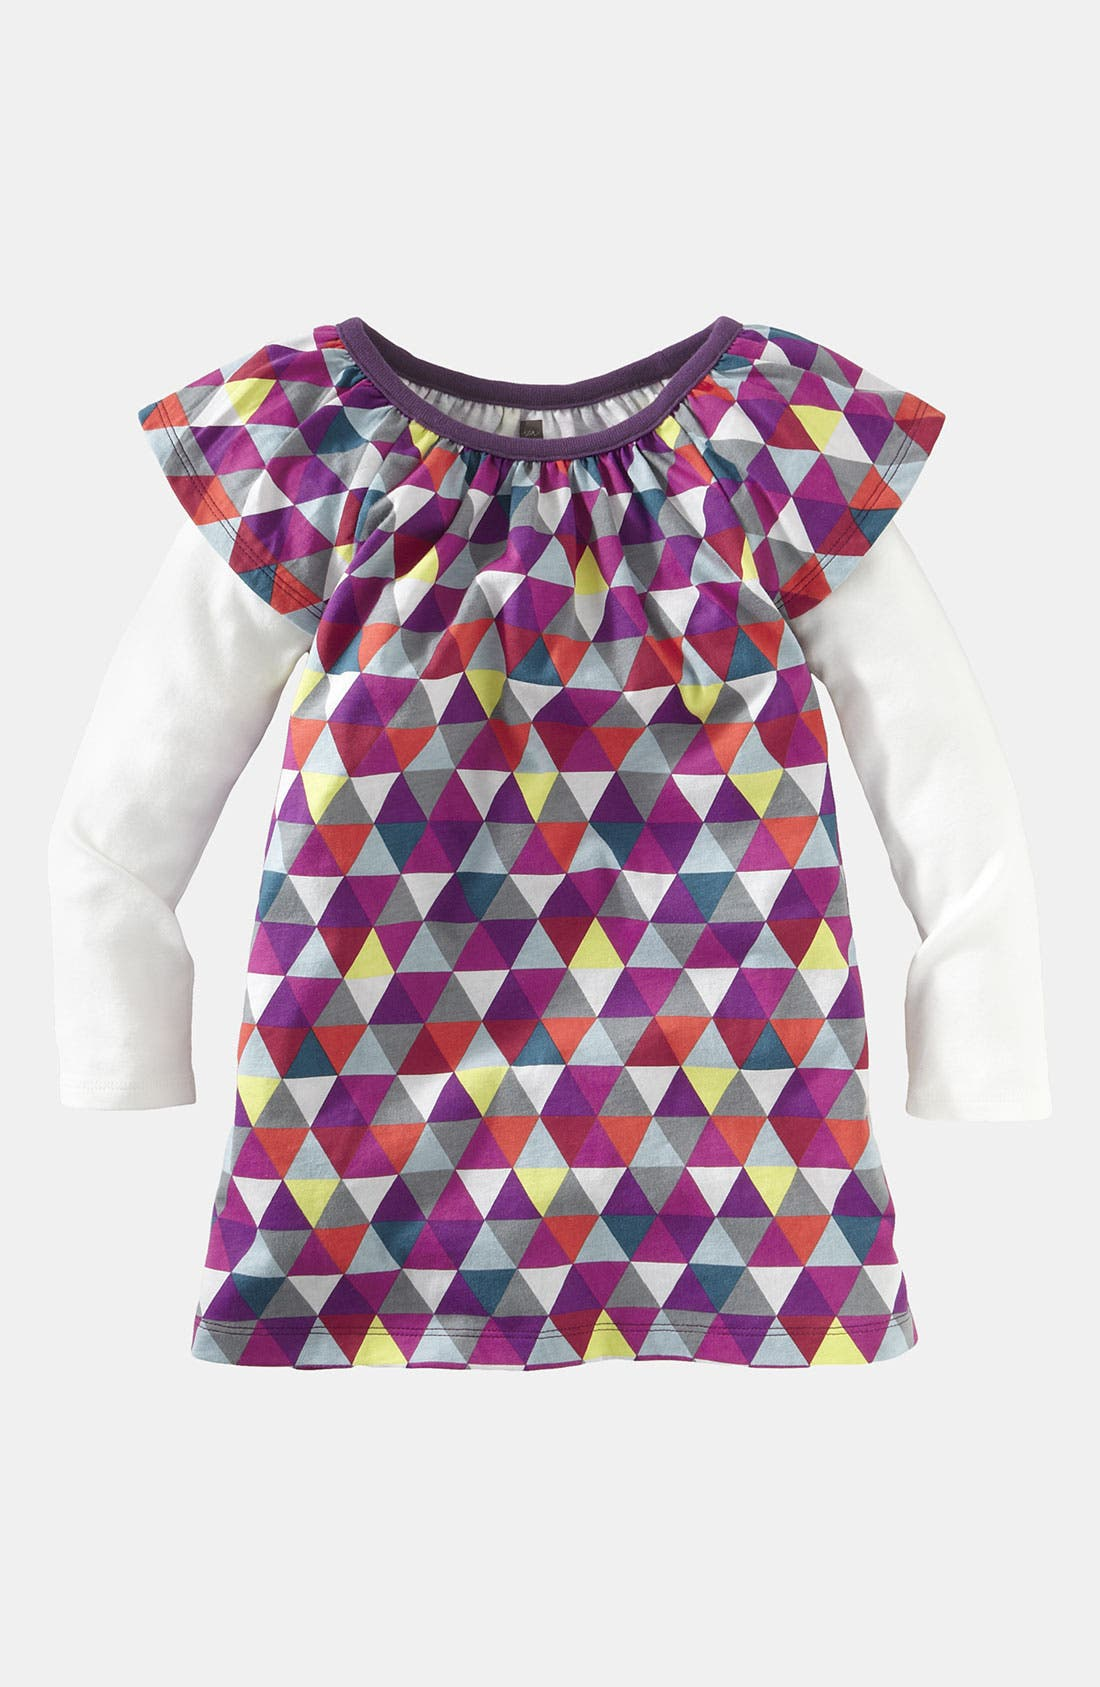 Alternate Image 1 Selected - Tea Collection 'Mode Triangle' Dress (Toddler)